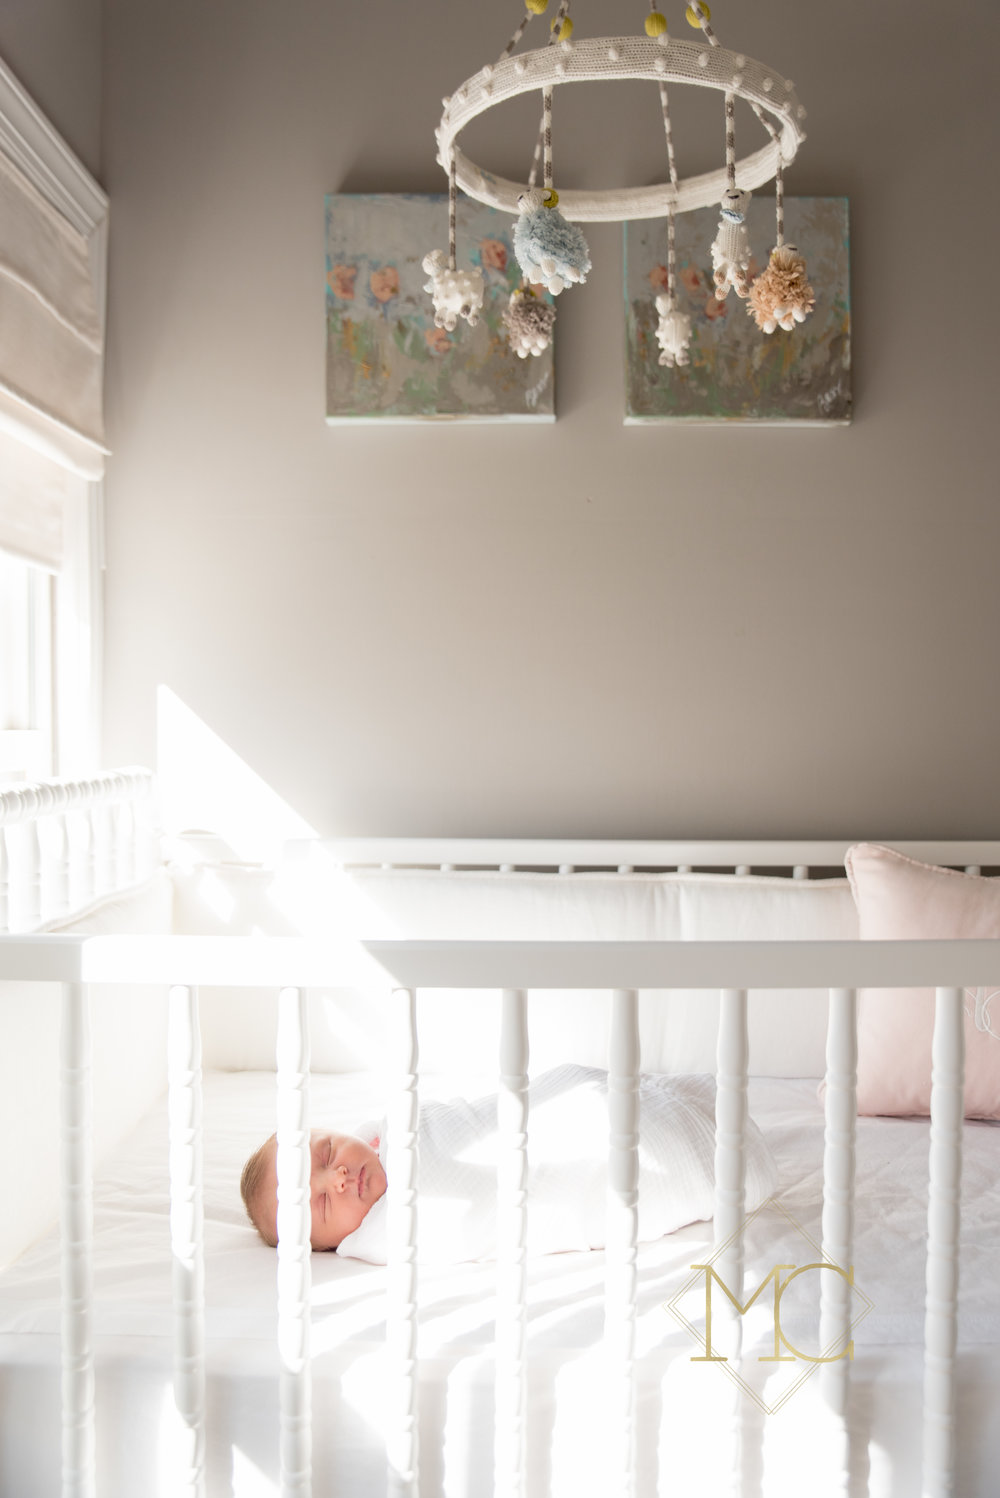 image from nashville newborn lifestyle photo session of baby girl in her nursery with art and mobile